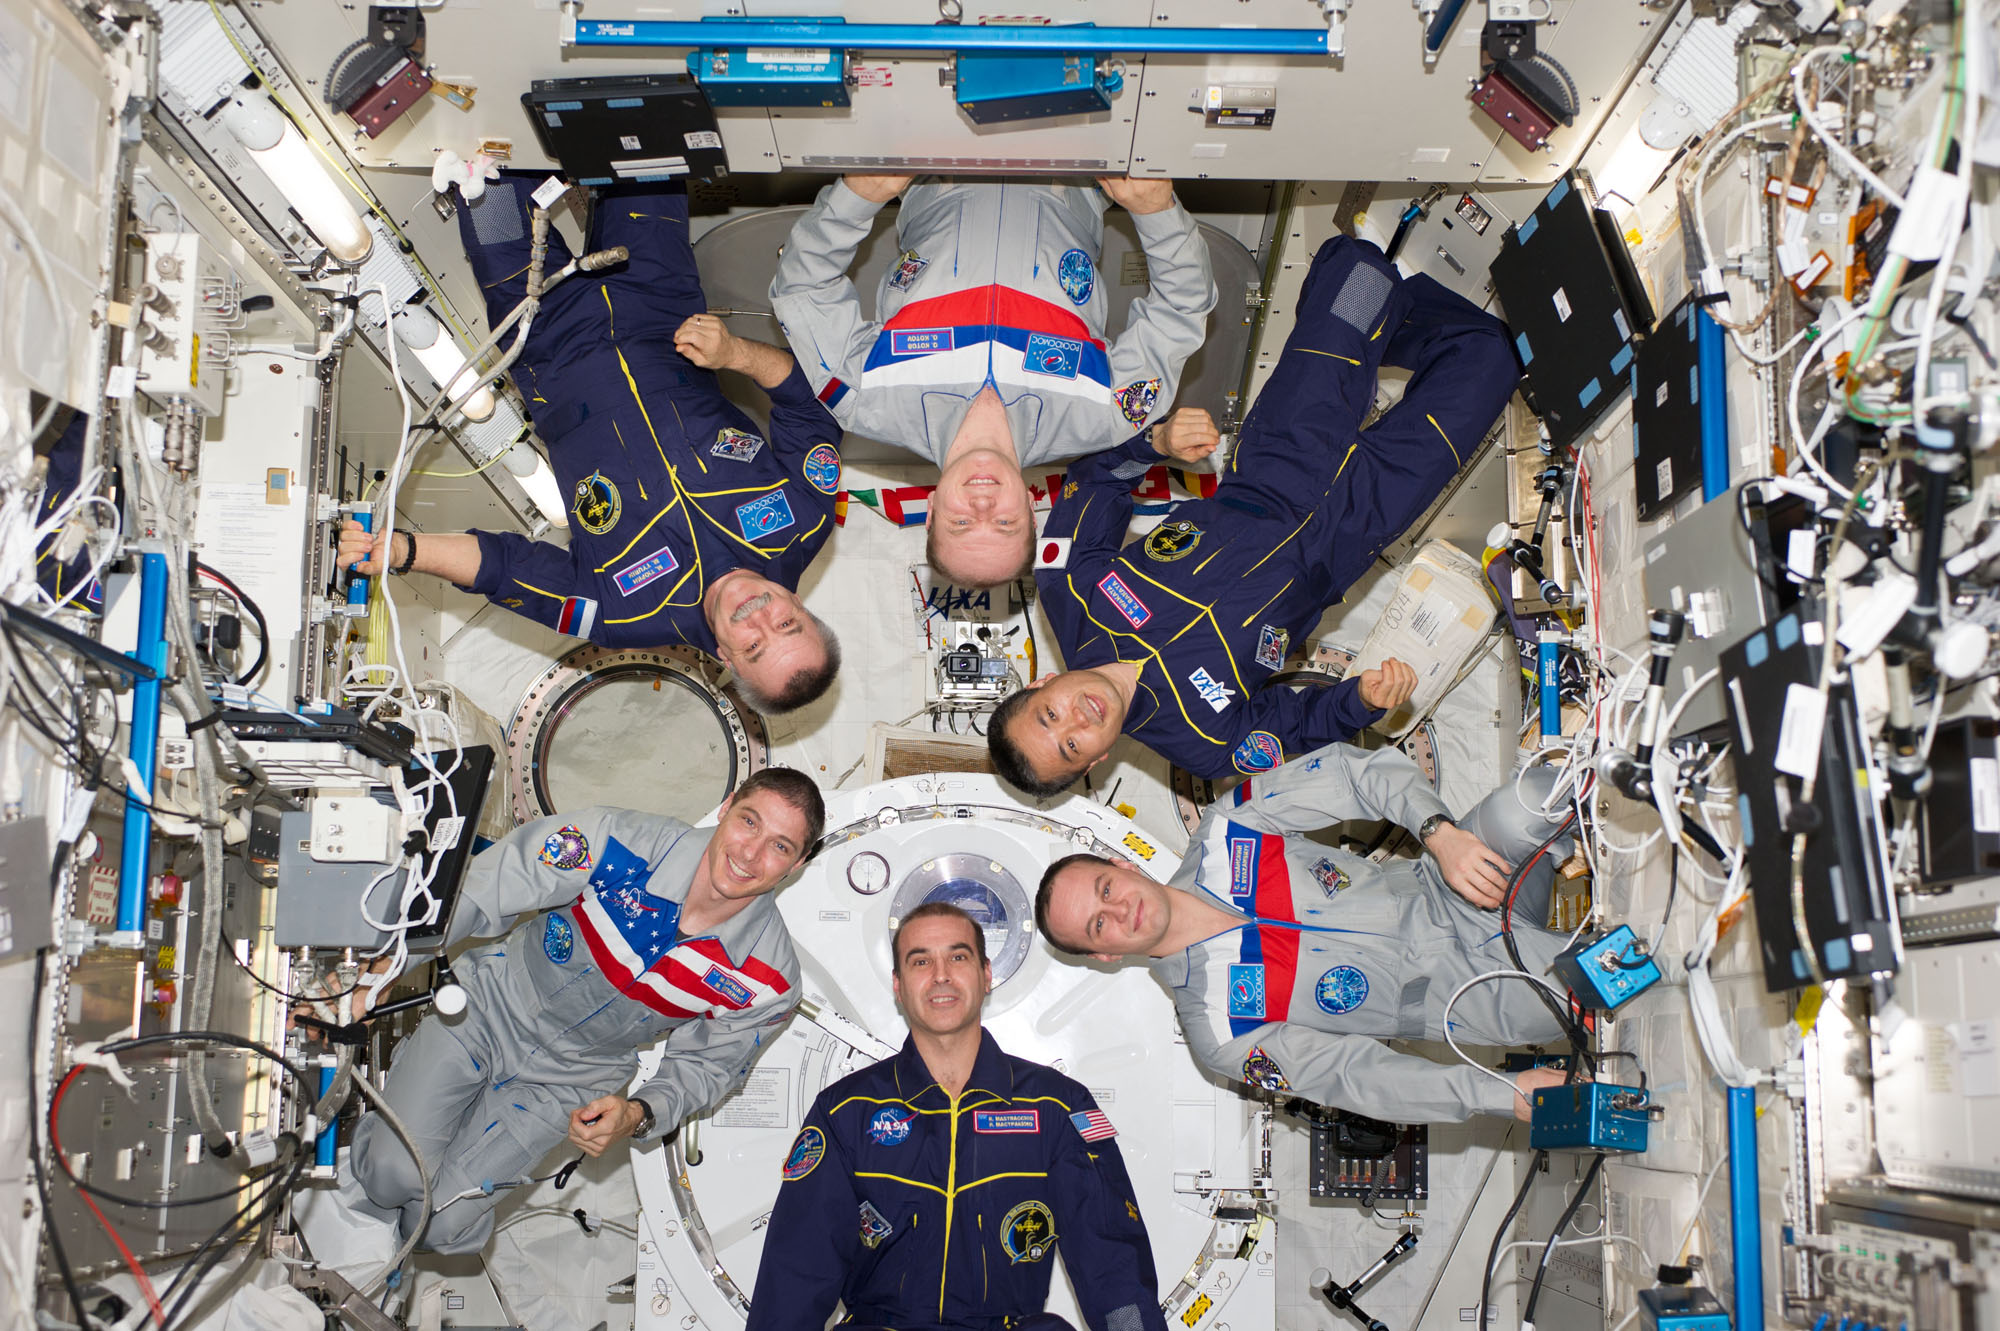 Expedition 38 Crew on the International Space Station